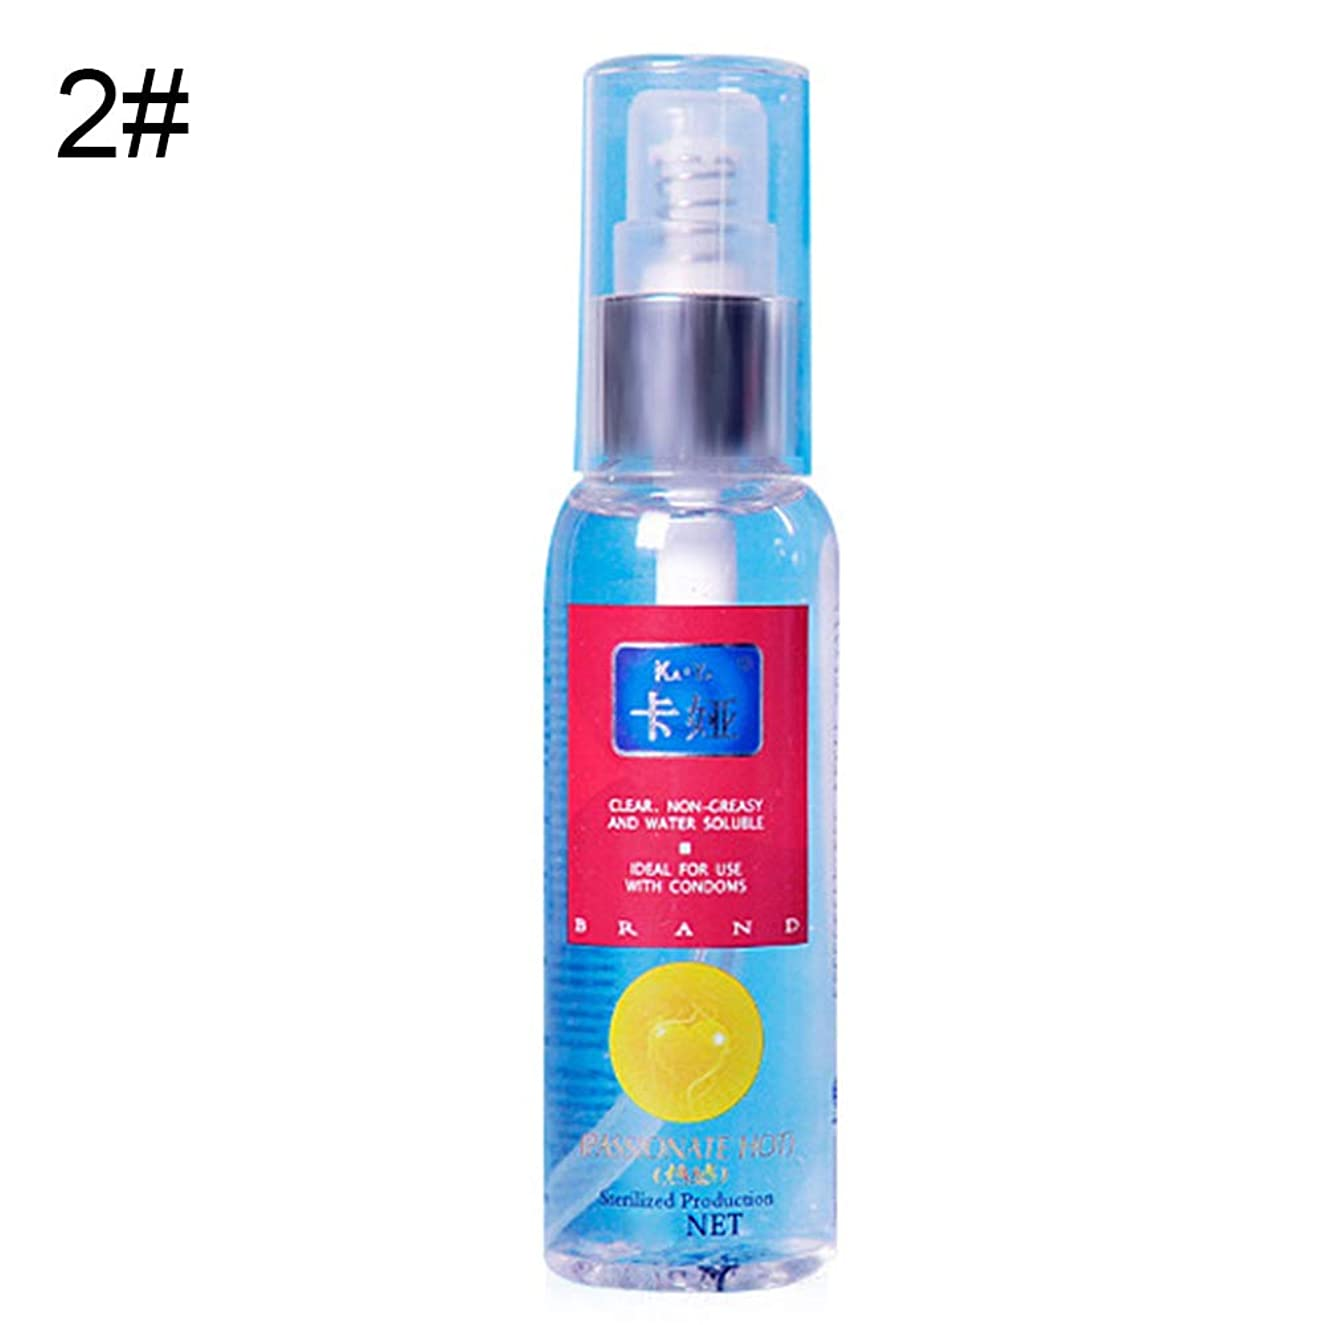 50g Female Sex Lubricant Body Lube Vaginal Shrink Gel Libido Orgasmic Enhancer Sex Drop Anal Tightening Lube Gel Water-Based Ice Cool Hot Smooth Massage Oil Couples Adults Product Passionate Hot